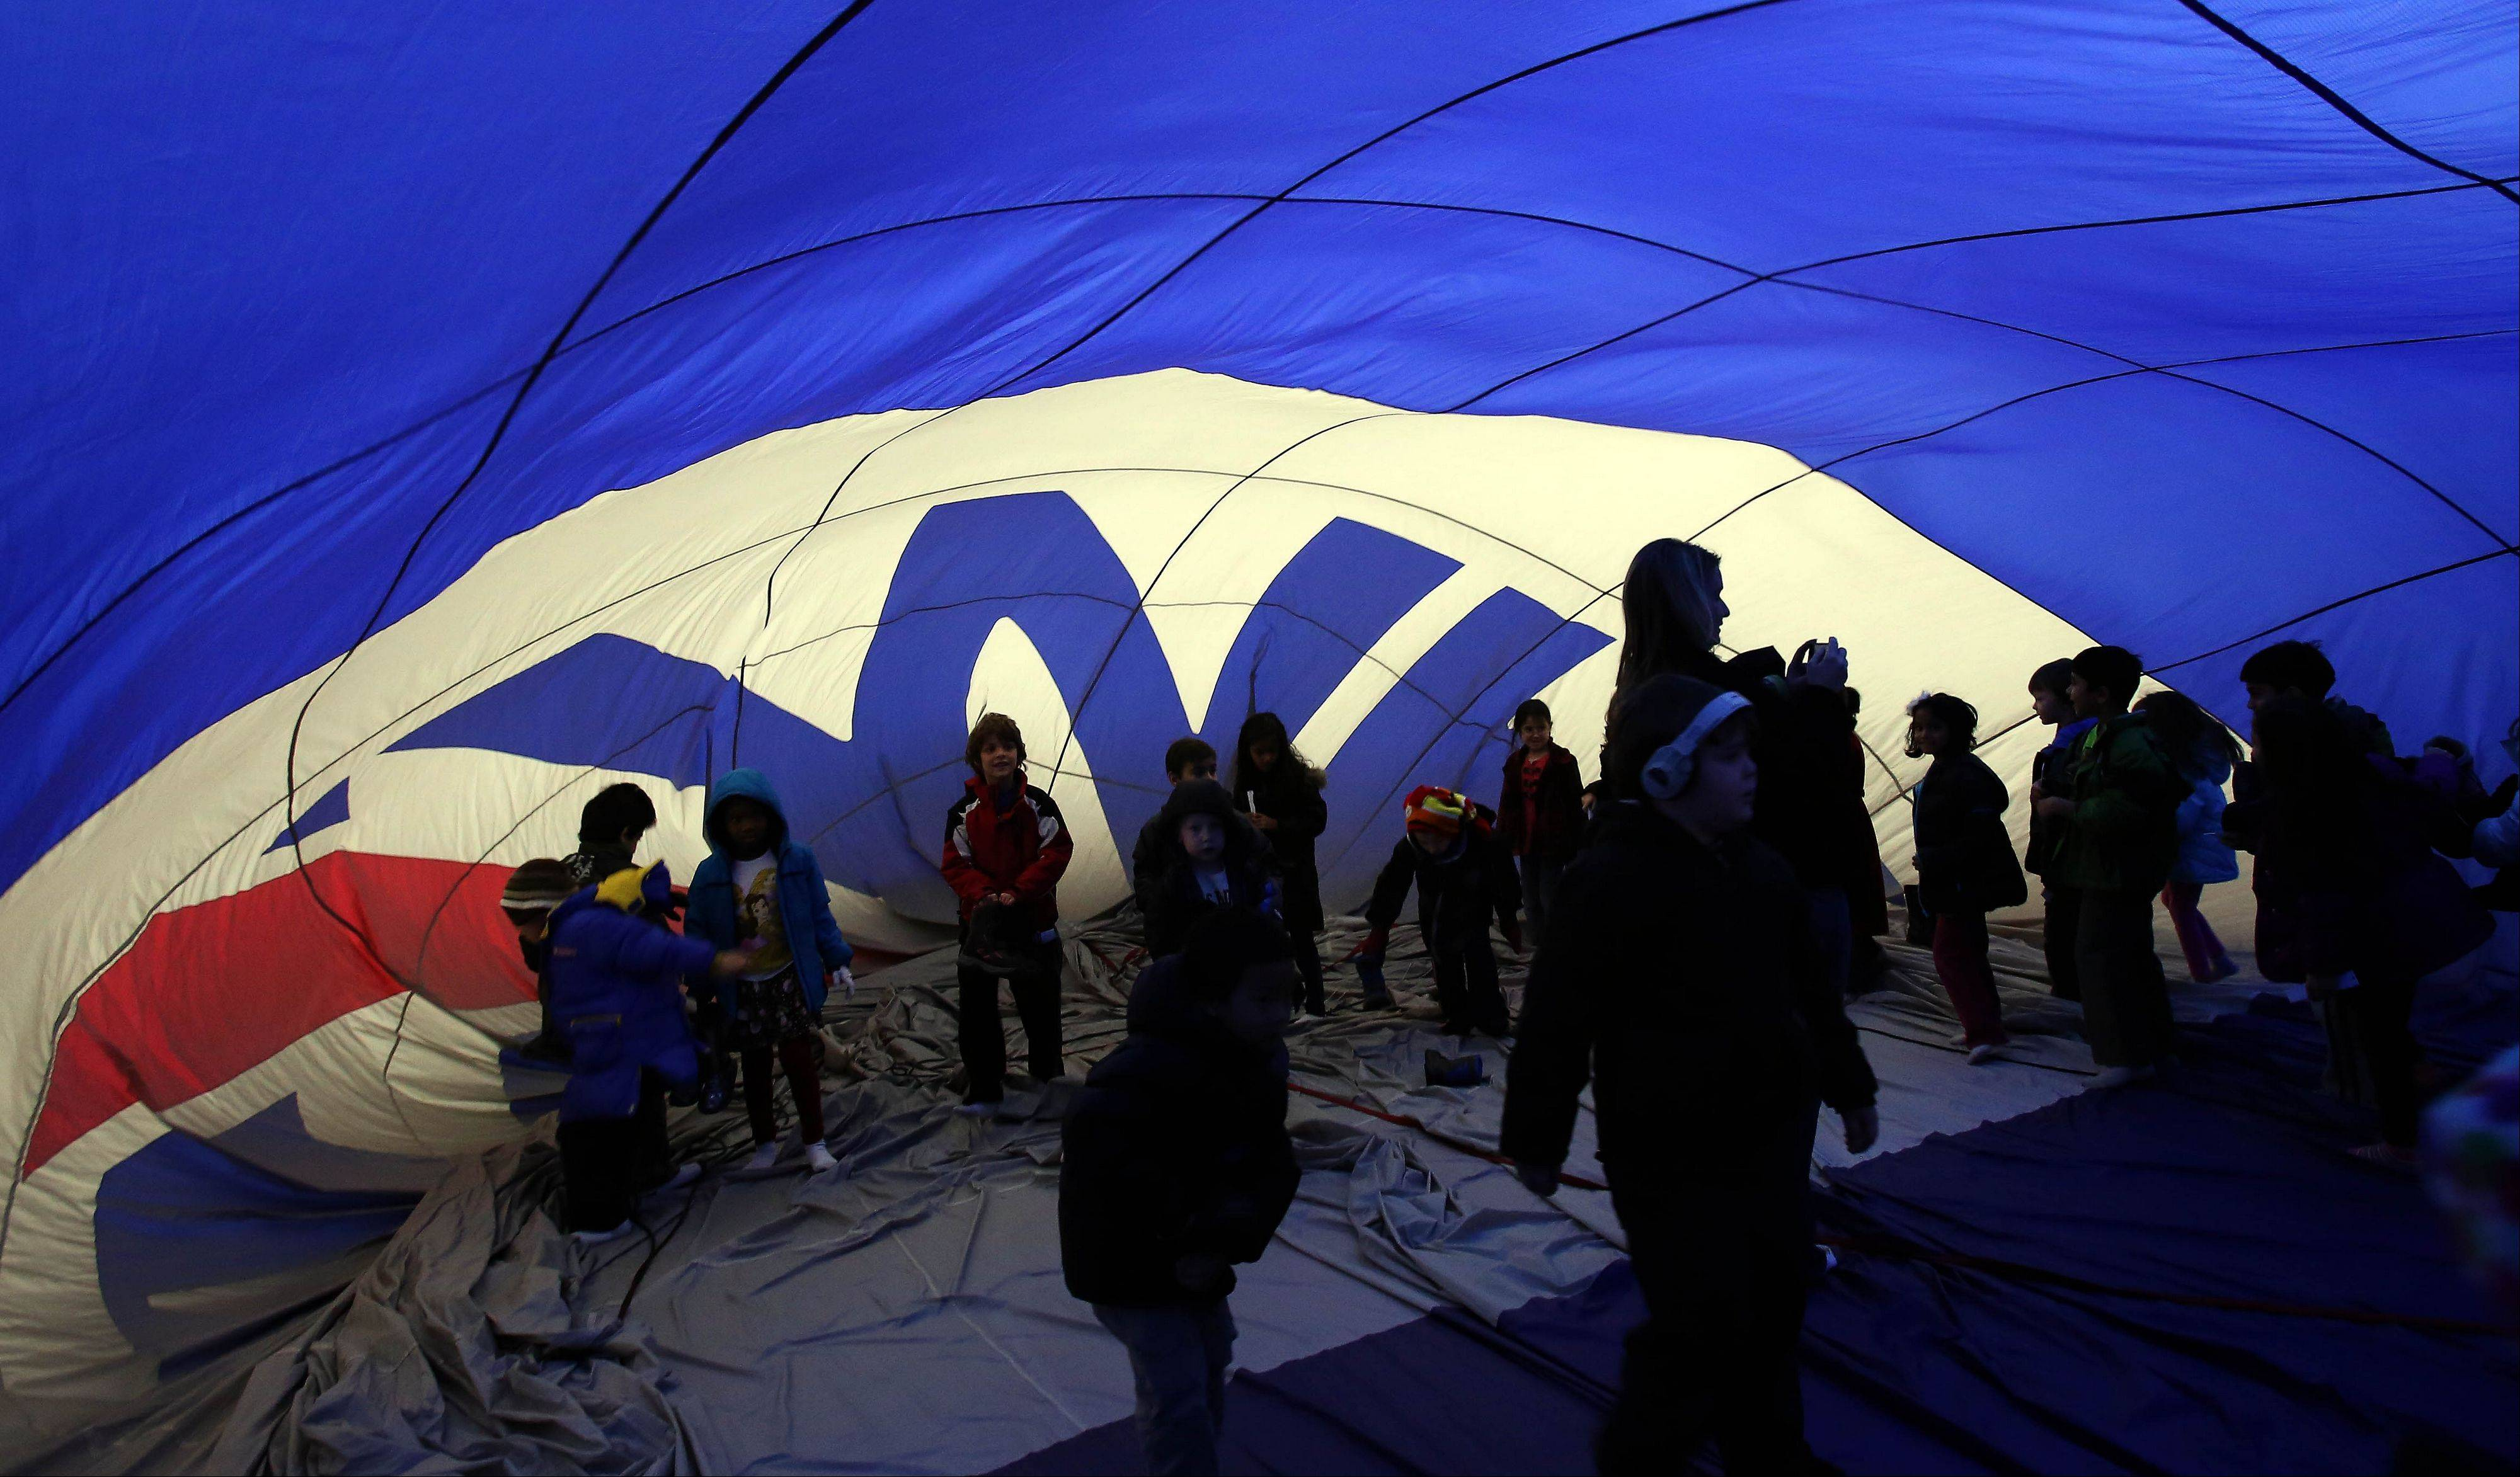 Students were able to walk around inside a partially inflated hot-air balloon Friday as a crew from RE/MAX visited Welch Elementary School in Naperville.